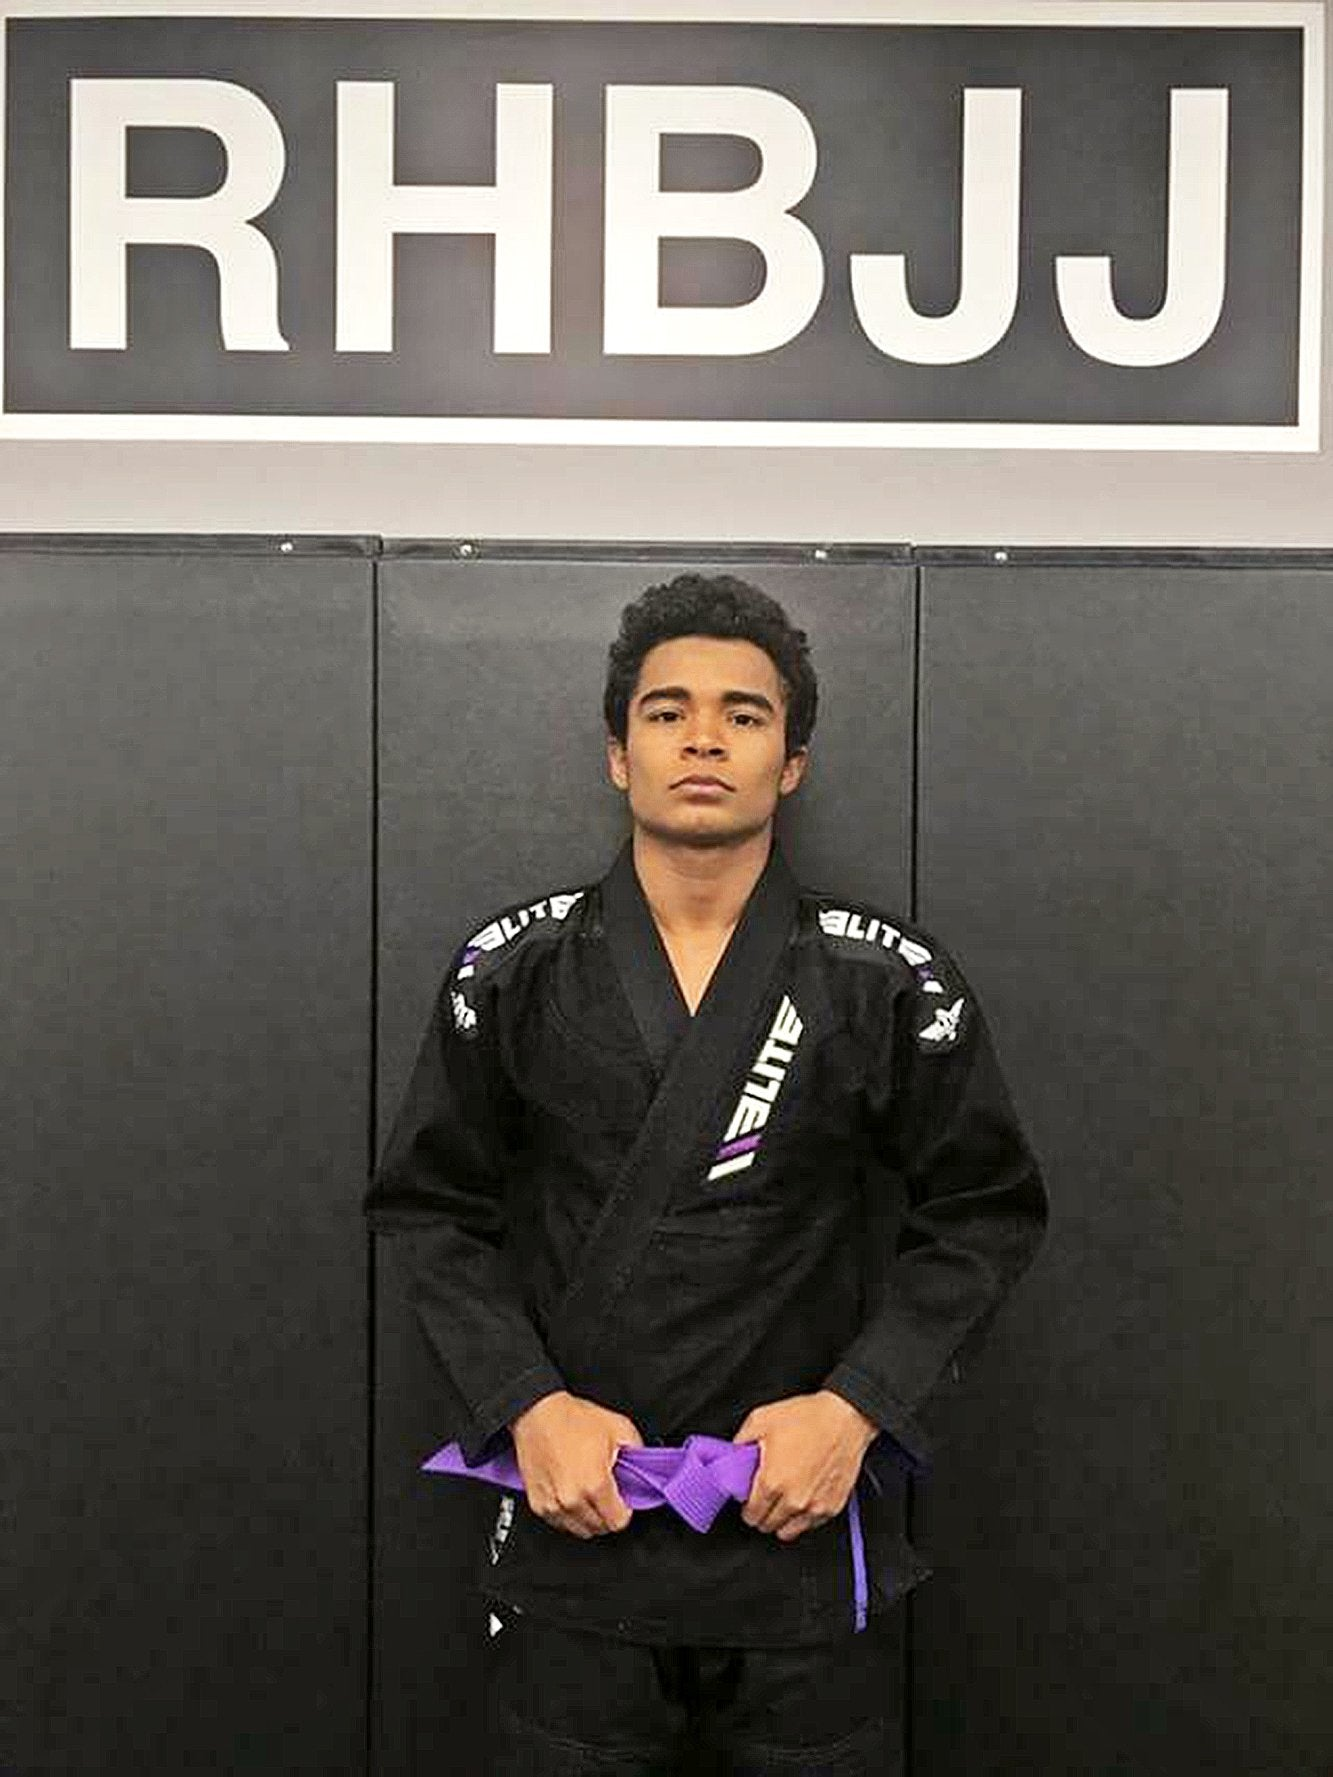 Elite Sports Team Elite Bjj Fighter Johnif de Oliveira Rocha  Image5